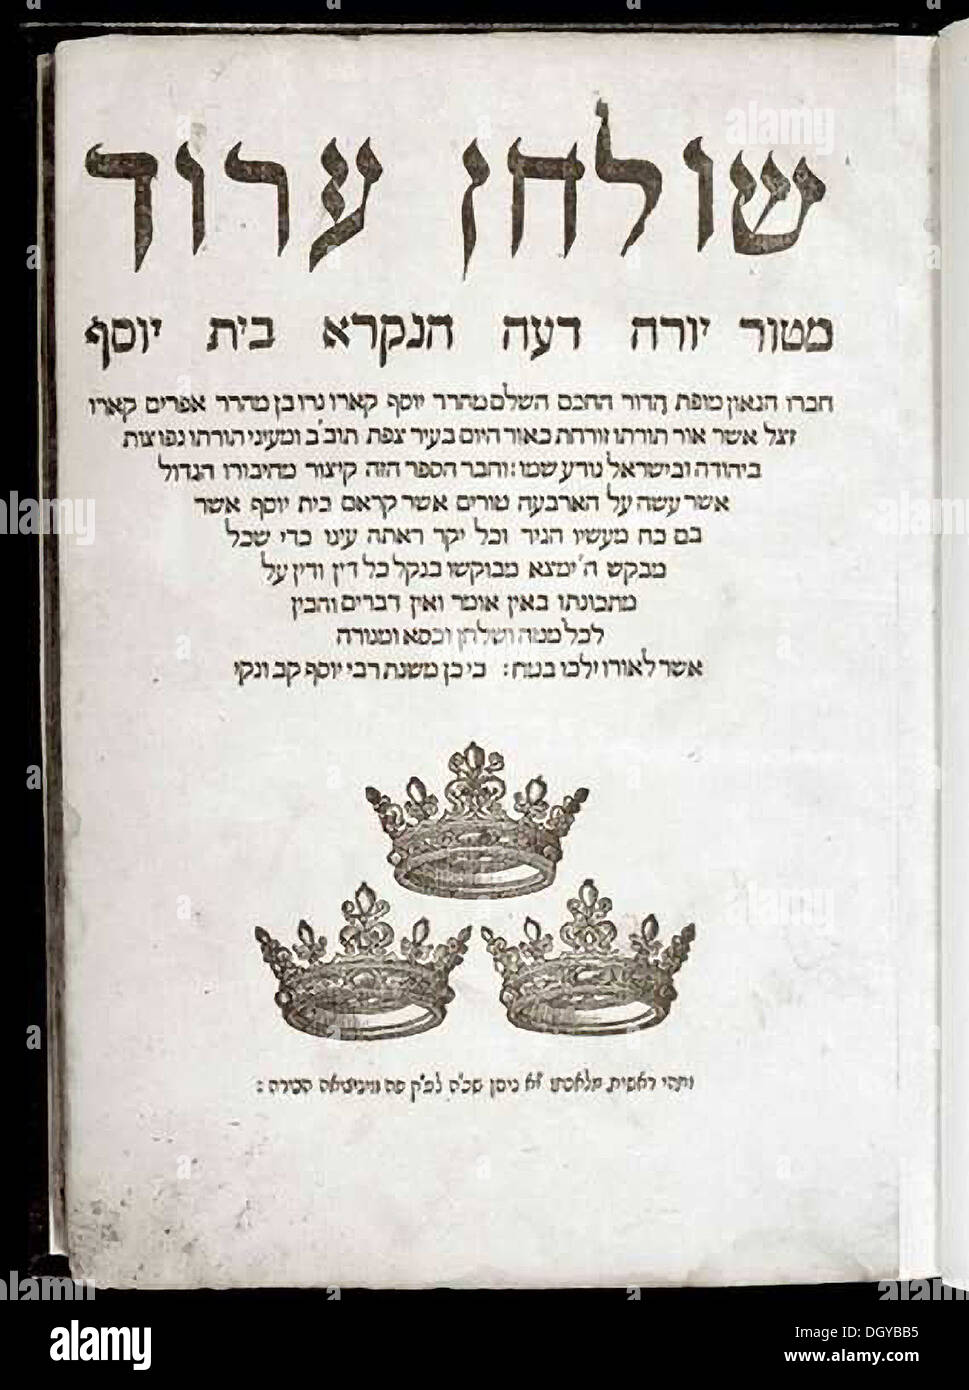 5655. The Shulchan Aruch, in Hebrew 'Set Table' is a codification, or written manual, of halacha, the Jewish law, composed by Rabbi Yosef Karo in the 16th century. It is considered the most authoritative compilation of halacha since the Talmud. - Stock Image